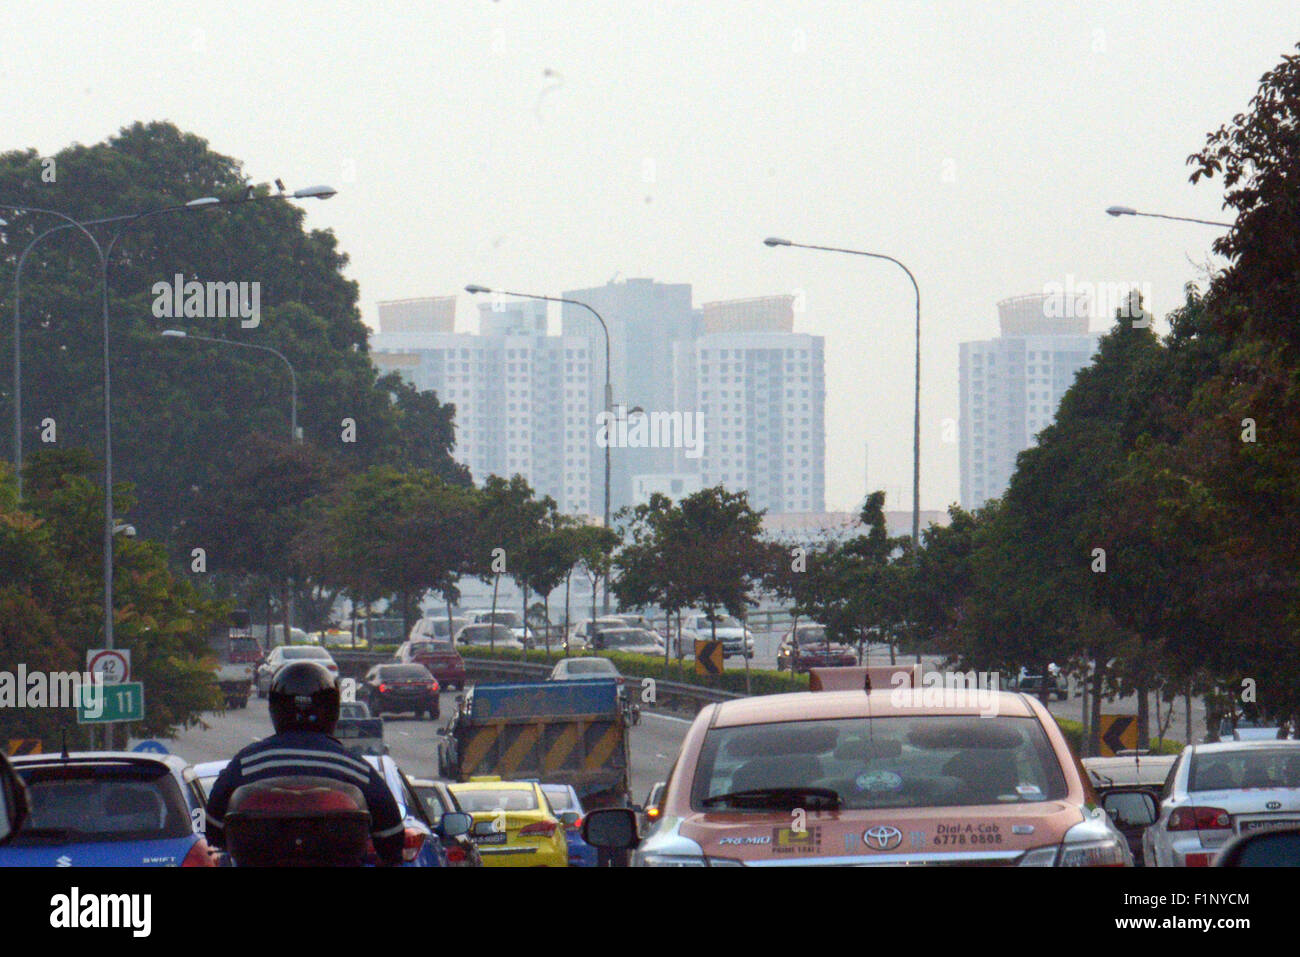 (150905) -- SINGAPORE, Sept. 5, 2015 (Xinhua) -- Haze covers Singapore's Toa Payoh and Bishan districts, Sept. - Stock Image